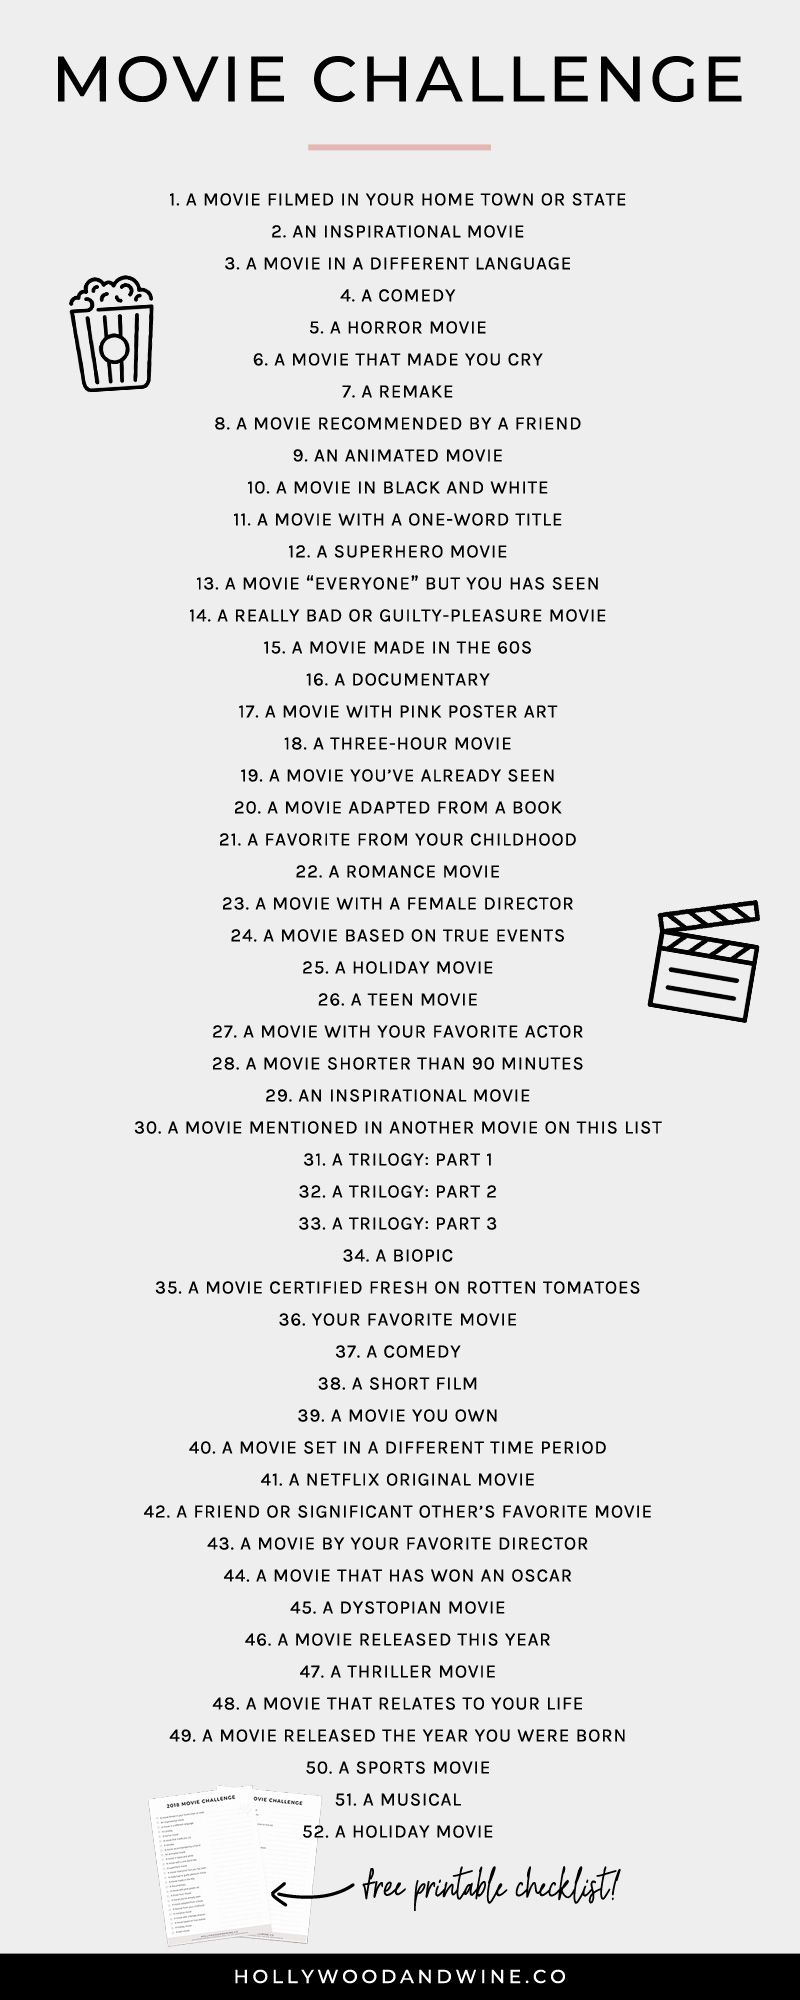 Movie Challenge A Free Printable Checklist With Images